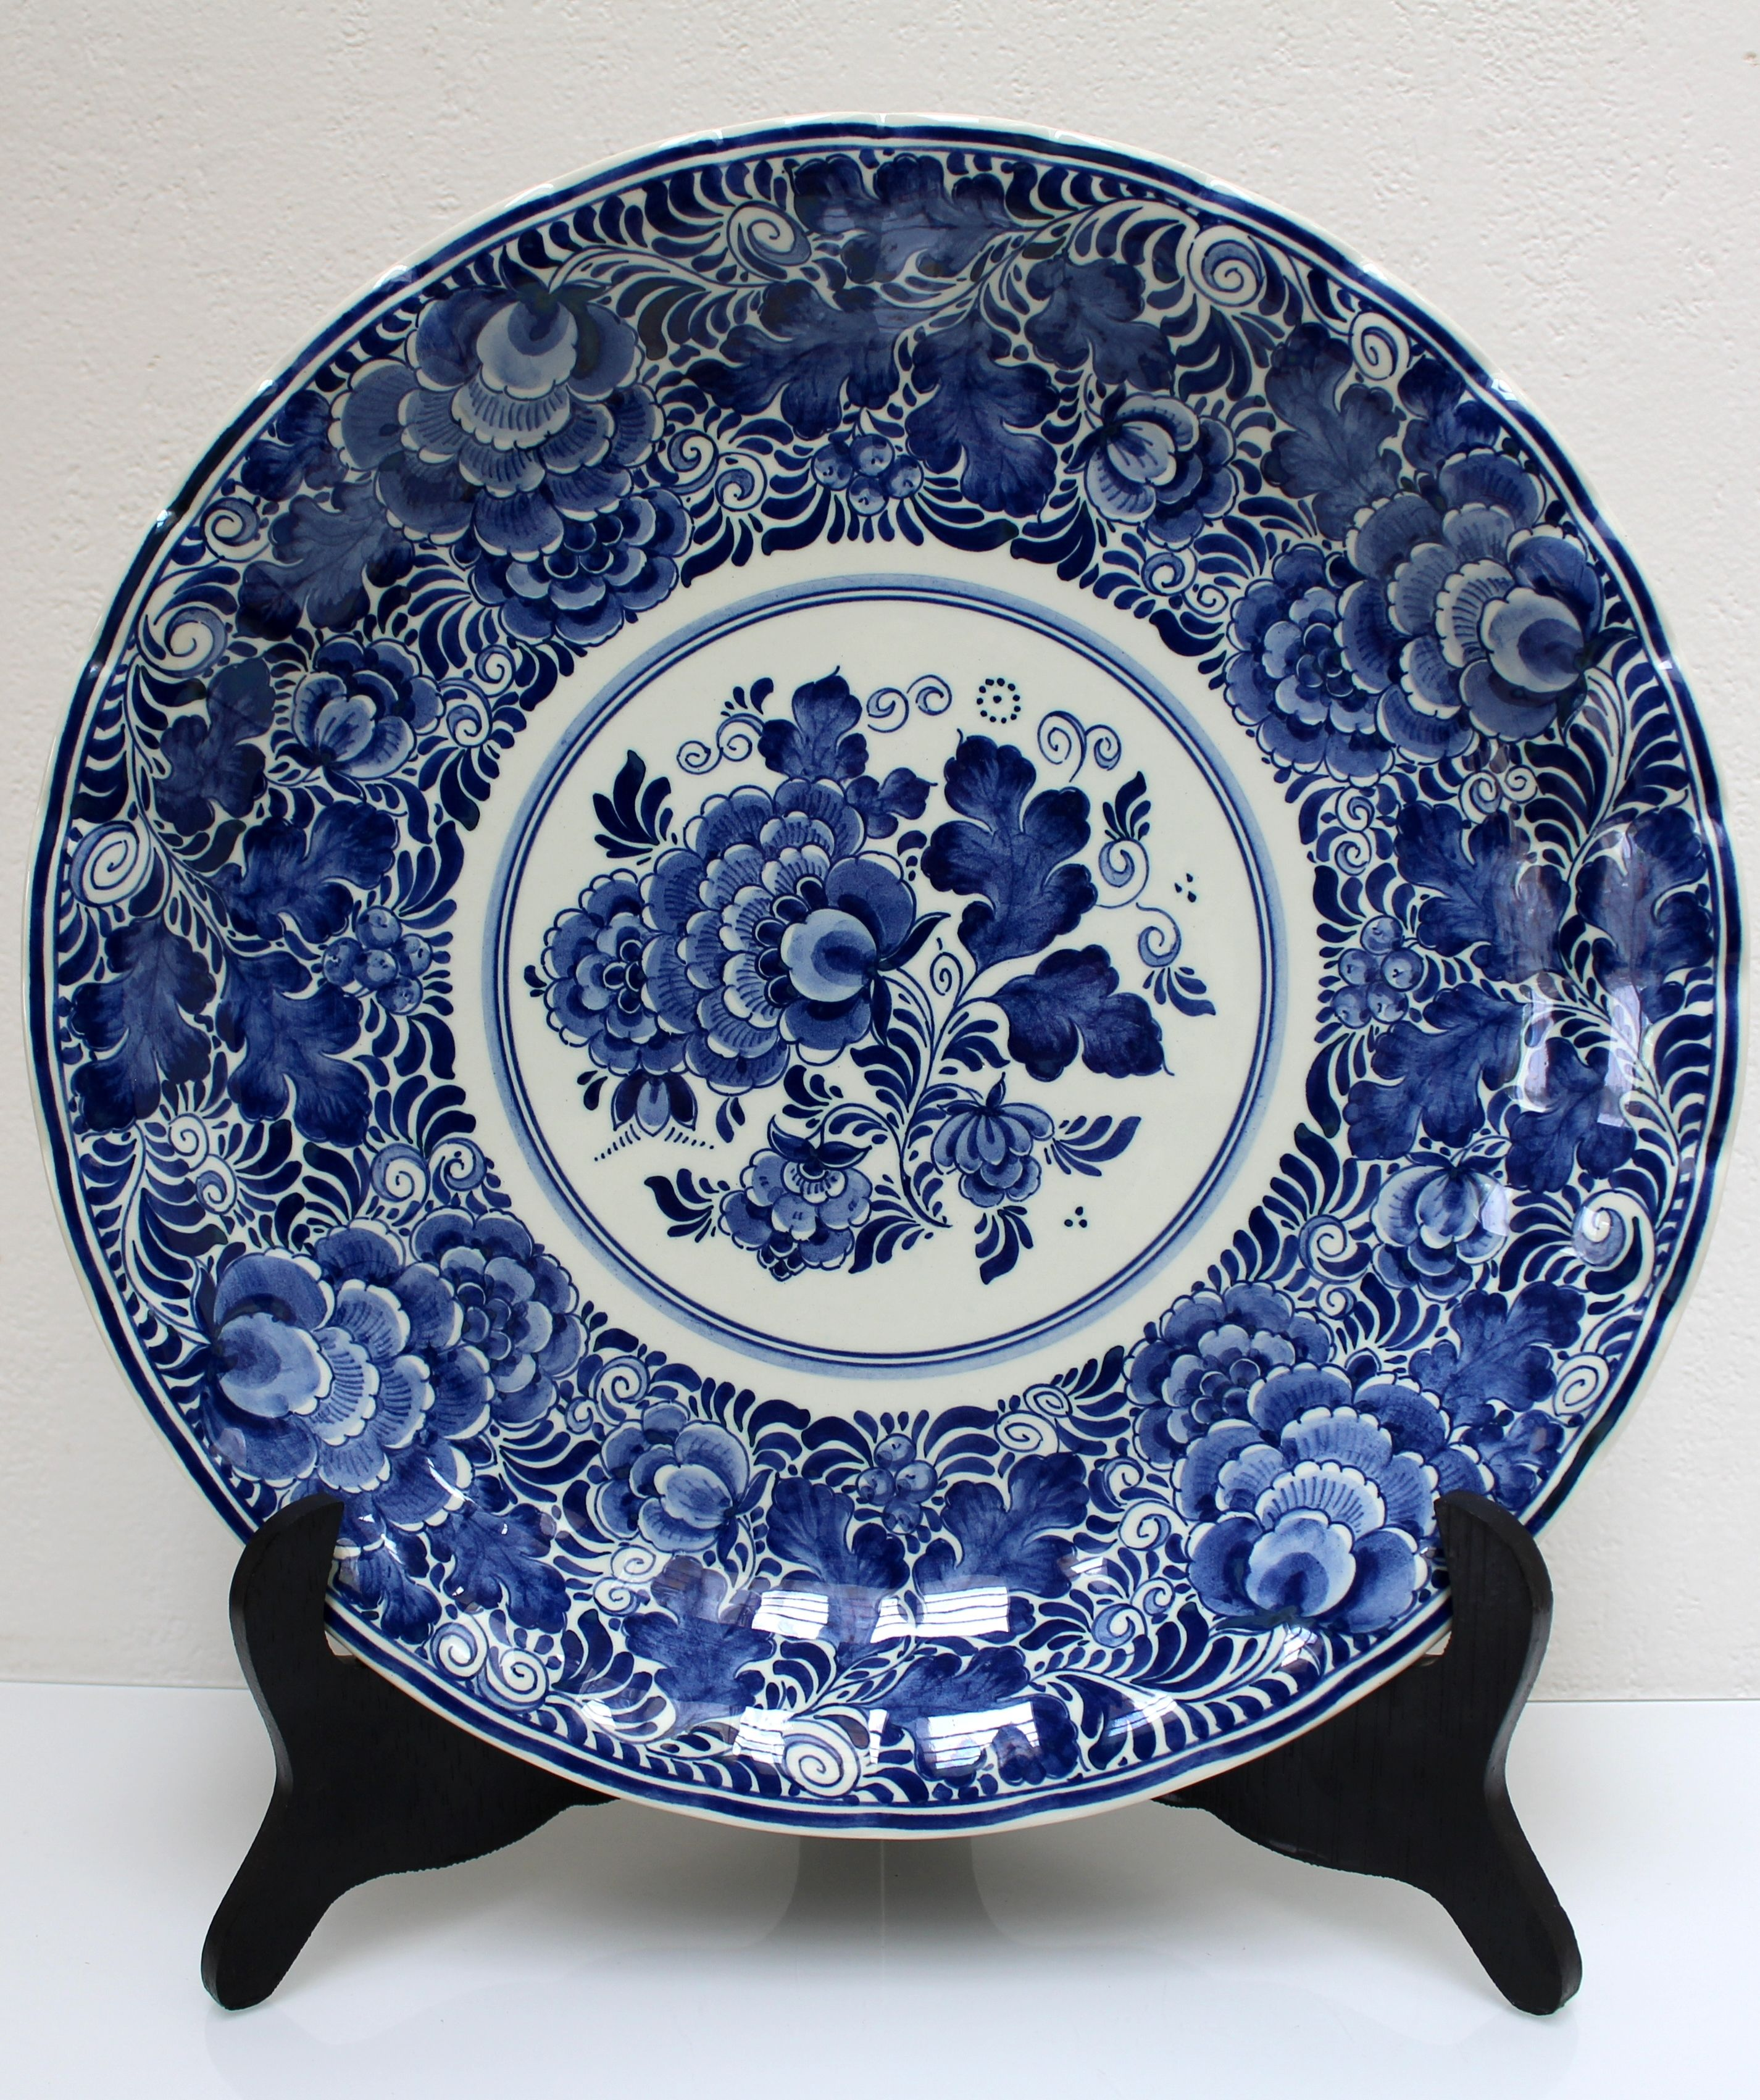 Genuine Delft Blue Wall Plate By Ram Arhnem Holland Hand Painted Blue And White Flowers Decor Vintage Dutch Delfts Bla Blue And White China Delft Pottery Art